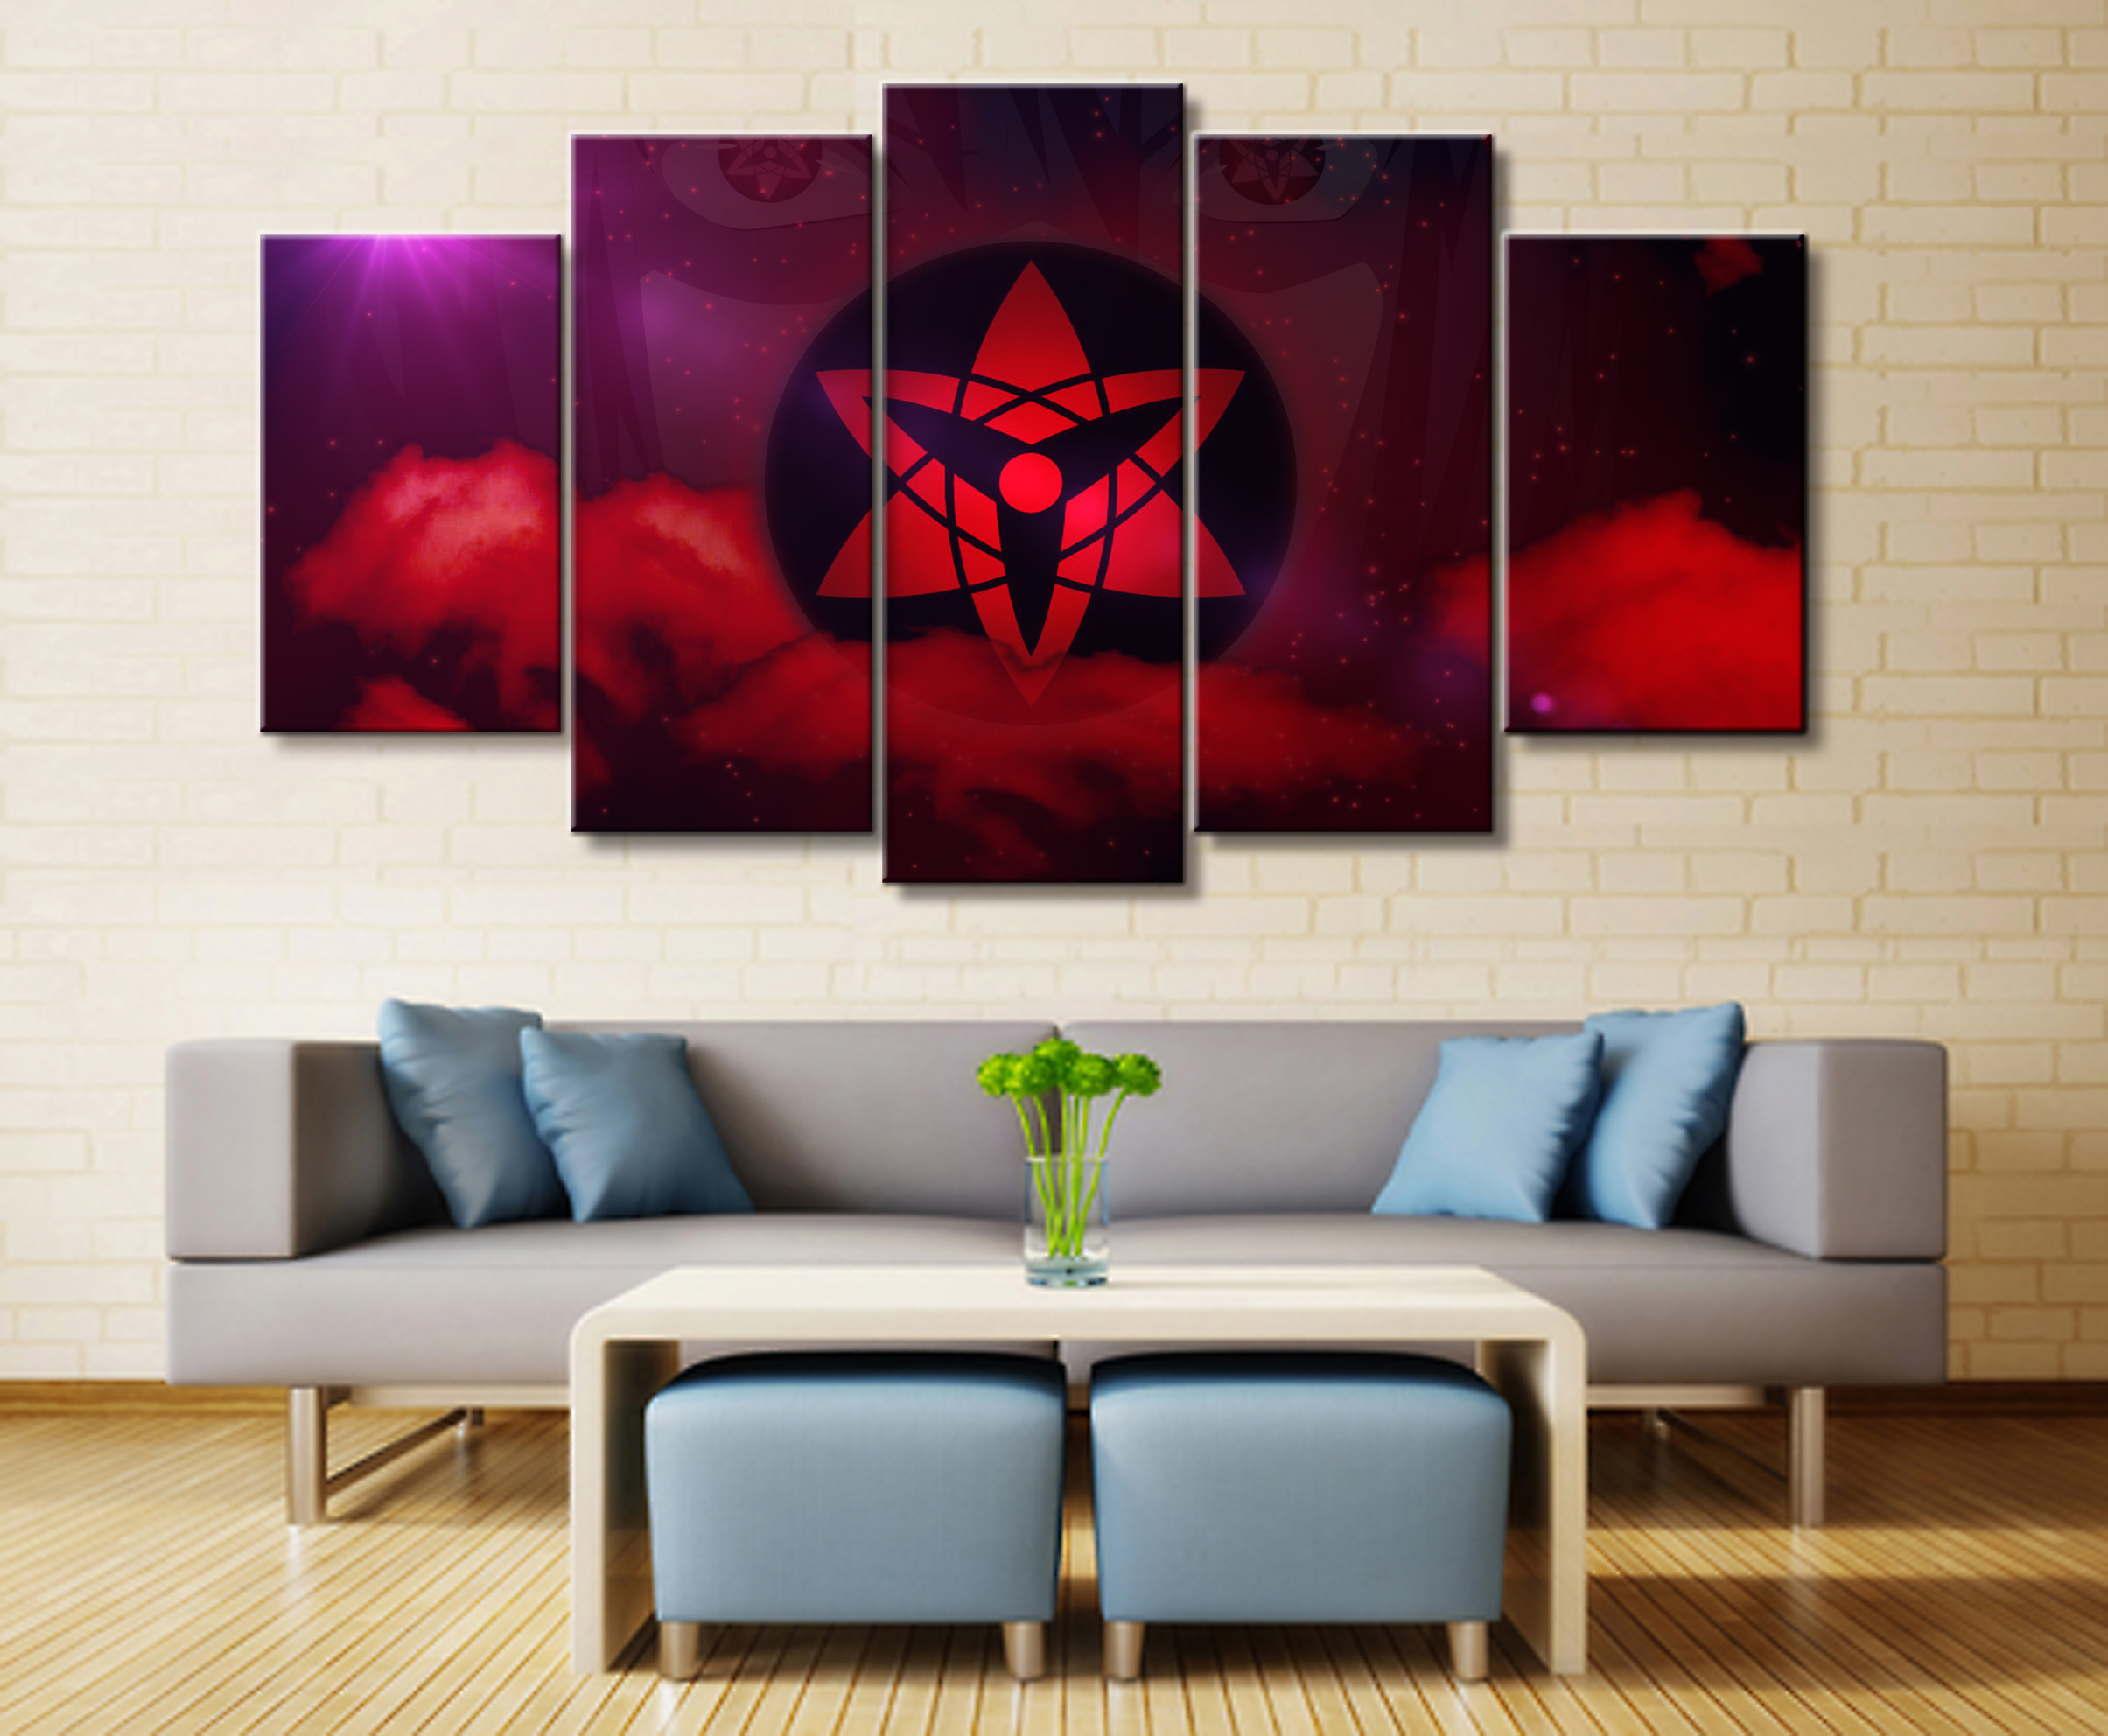 Wall Art Poster Painting Modular Pictures For Living Room Decorative Pictures Canvas Printed 5 Panel Cartoon Naruto Sasuke in Painting Calligraphy from Home Garden